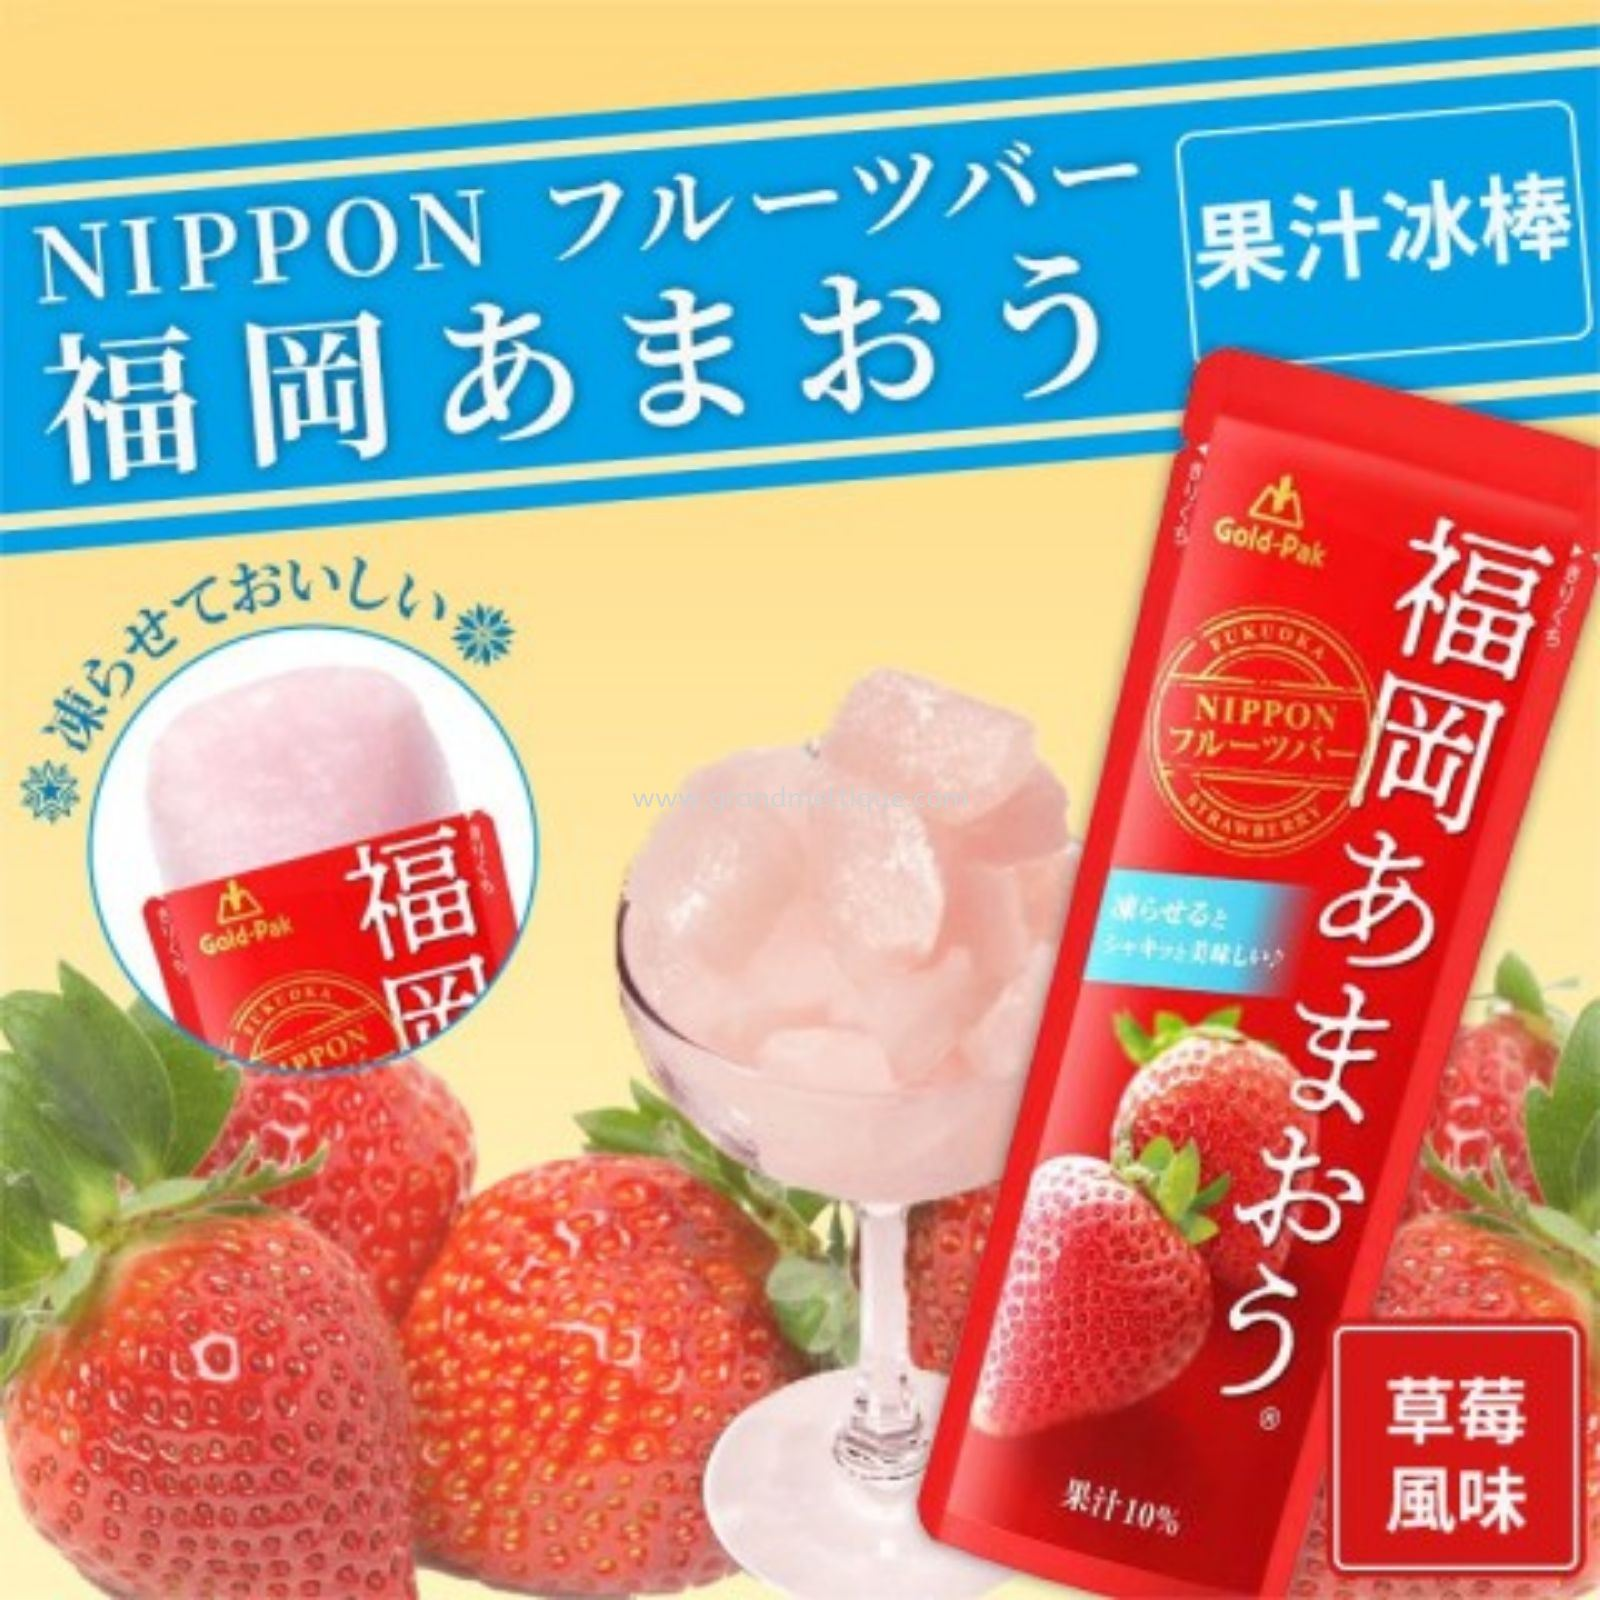 GOLD PAK FUKUOKA AMAOU STRAWBERRY 福草莓冰棒90G